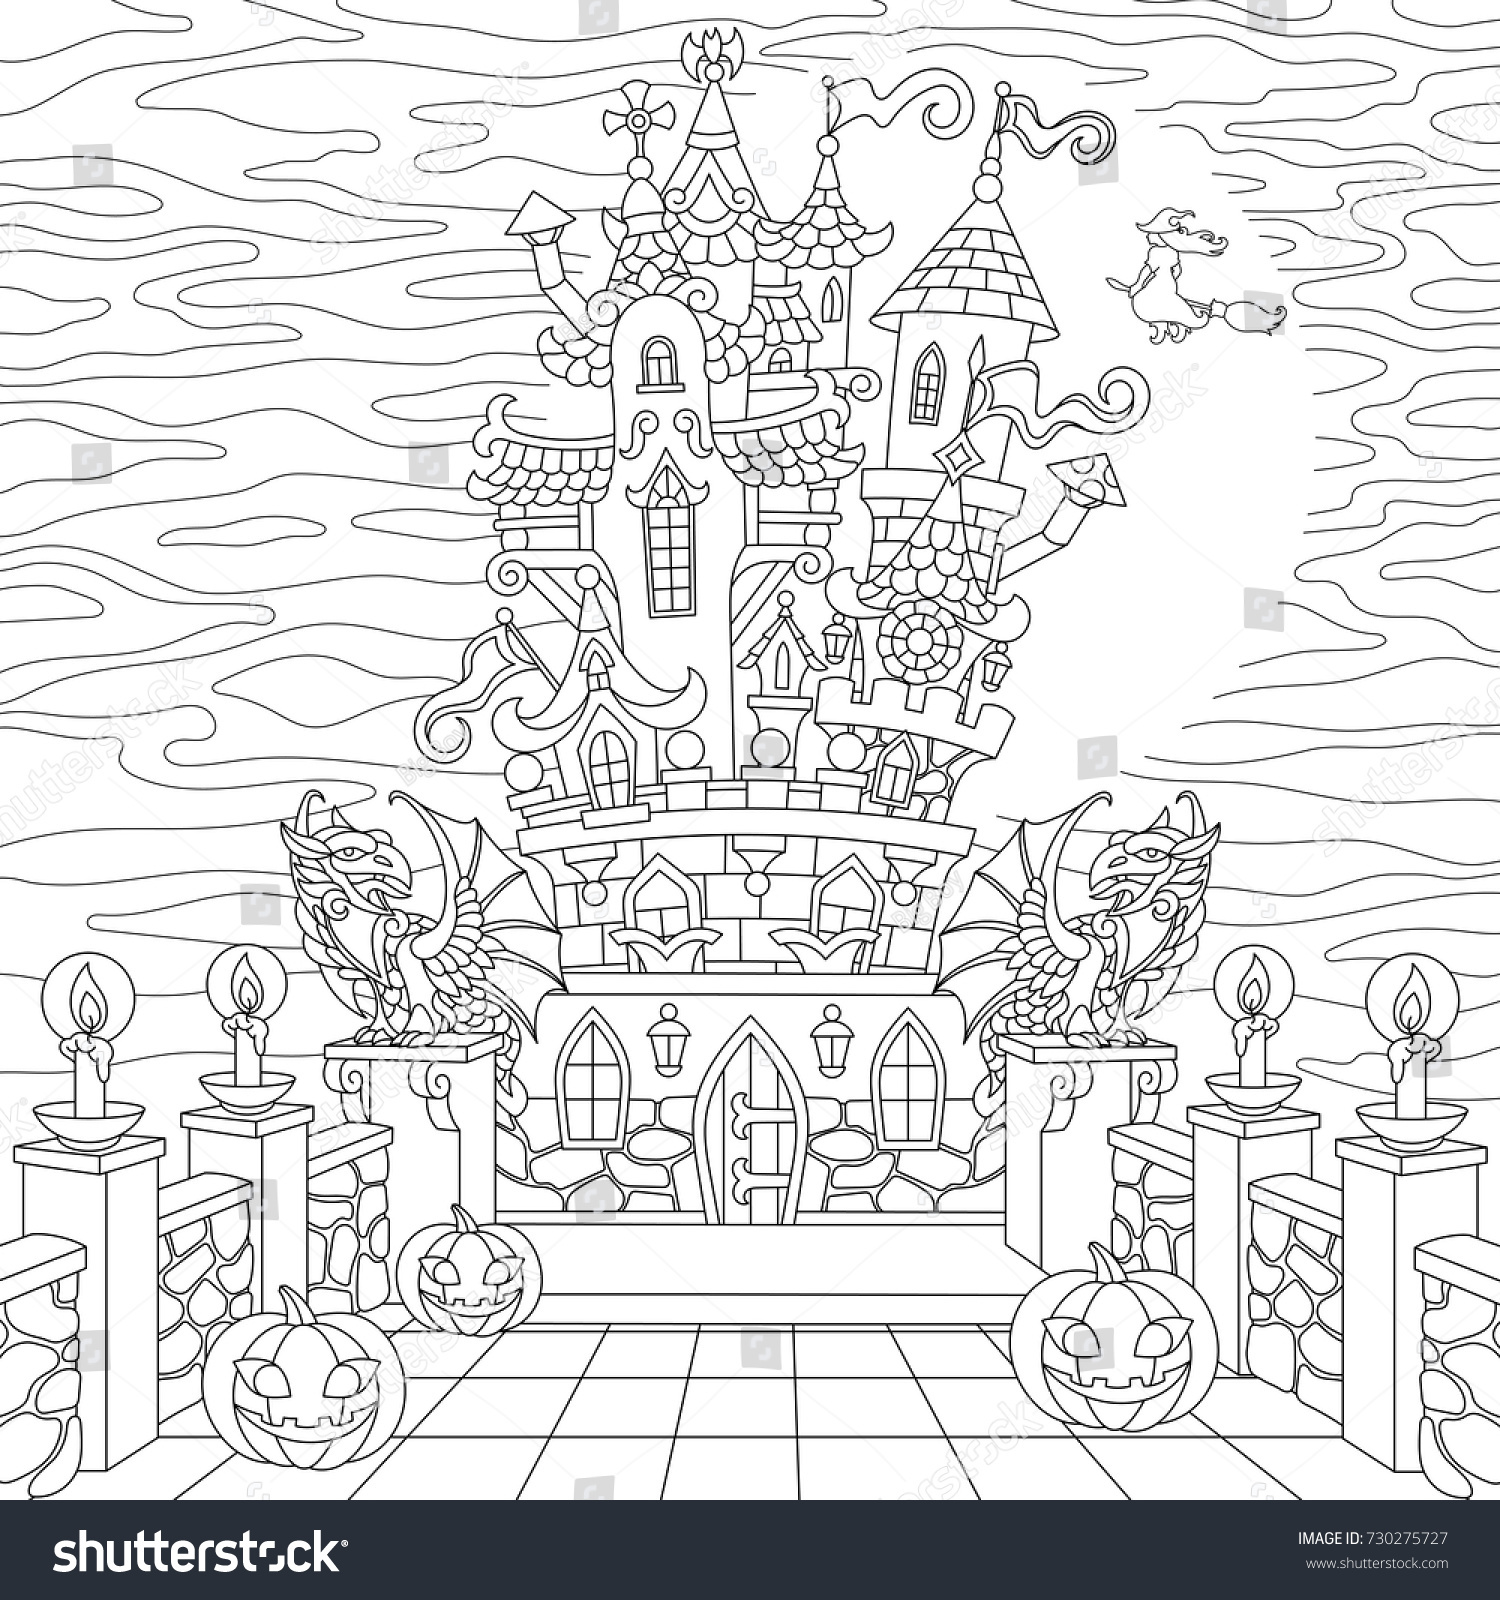 halloween coloring page spooky castle halloween pumpkins witch gothic statues of dragons - Gothic Coloring Book